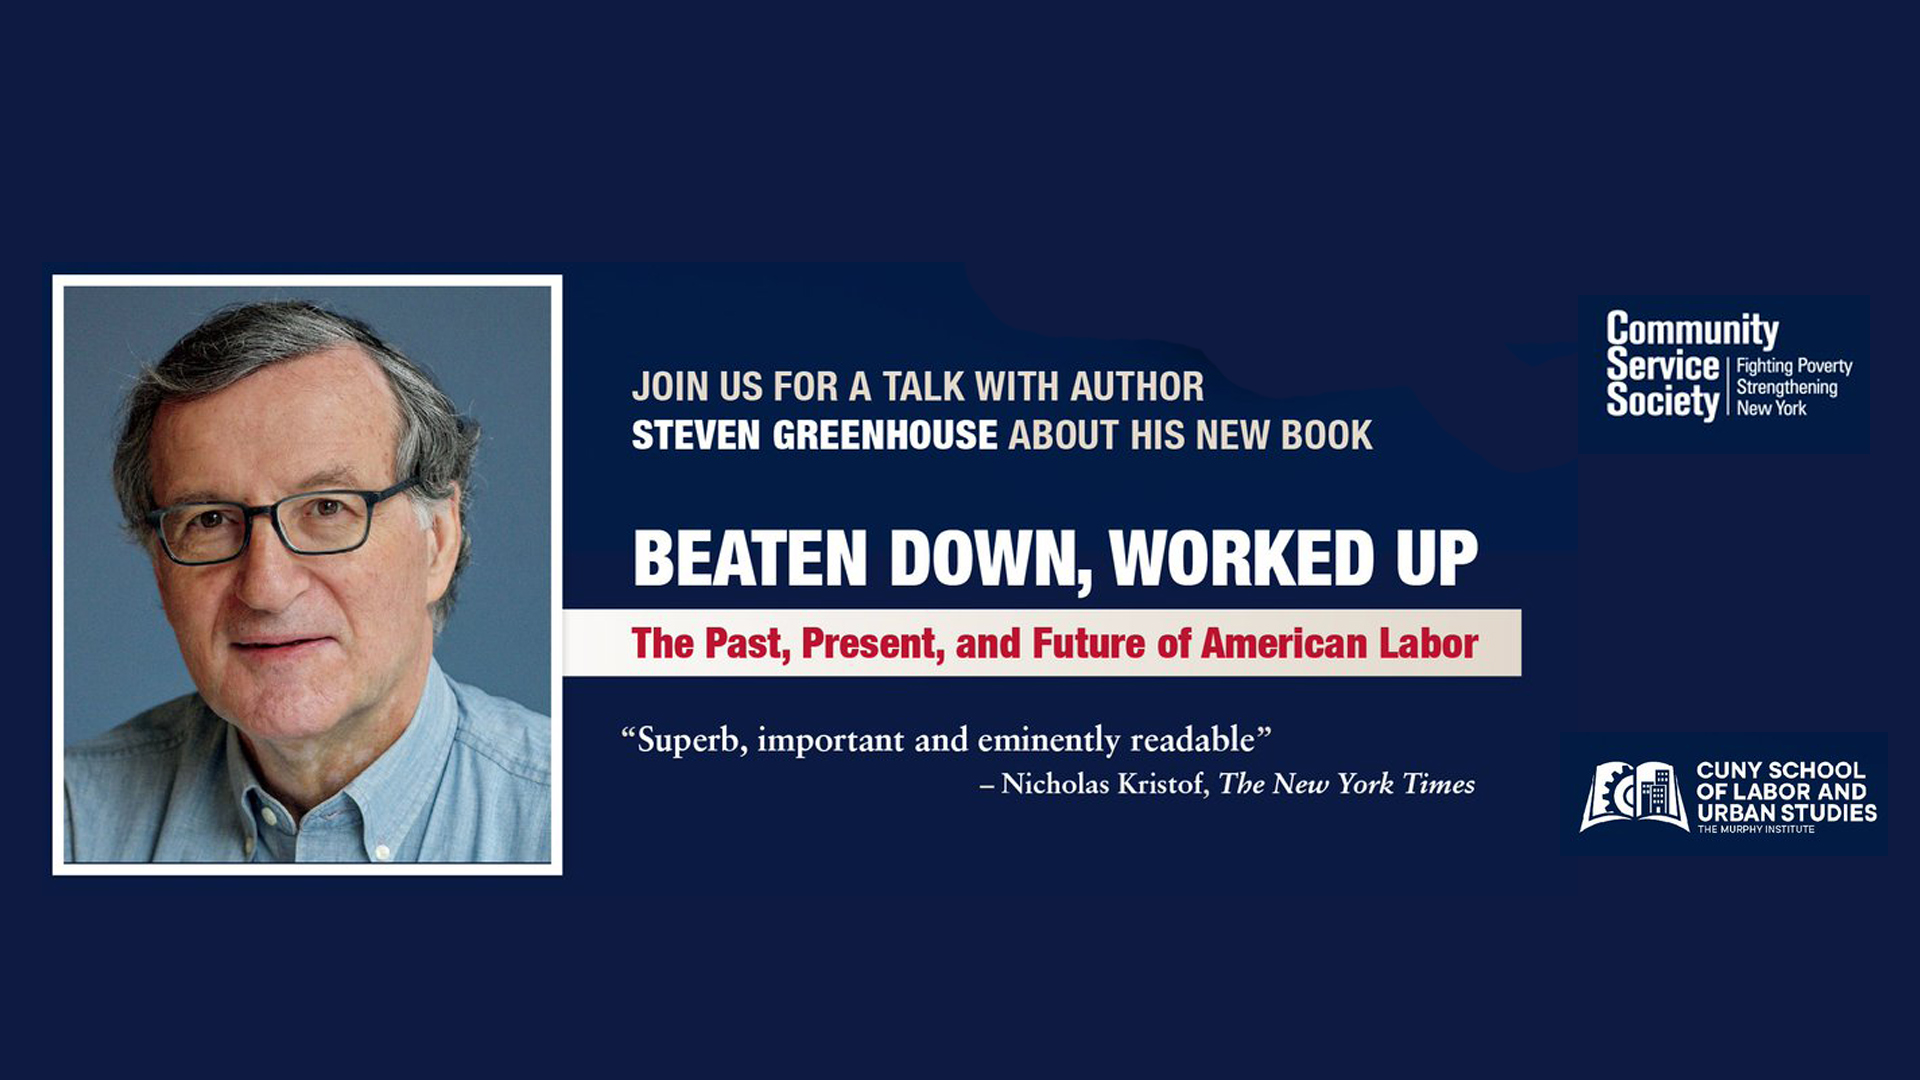 Join us for a talk with Steven Greenhouse about his new book beaten down, worked up.